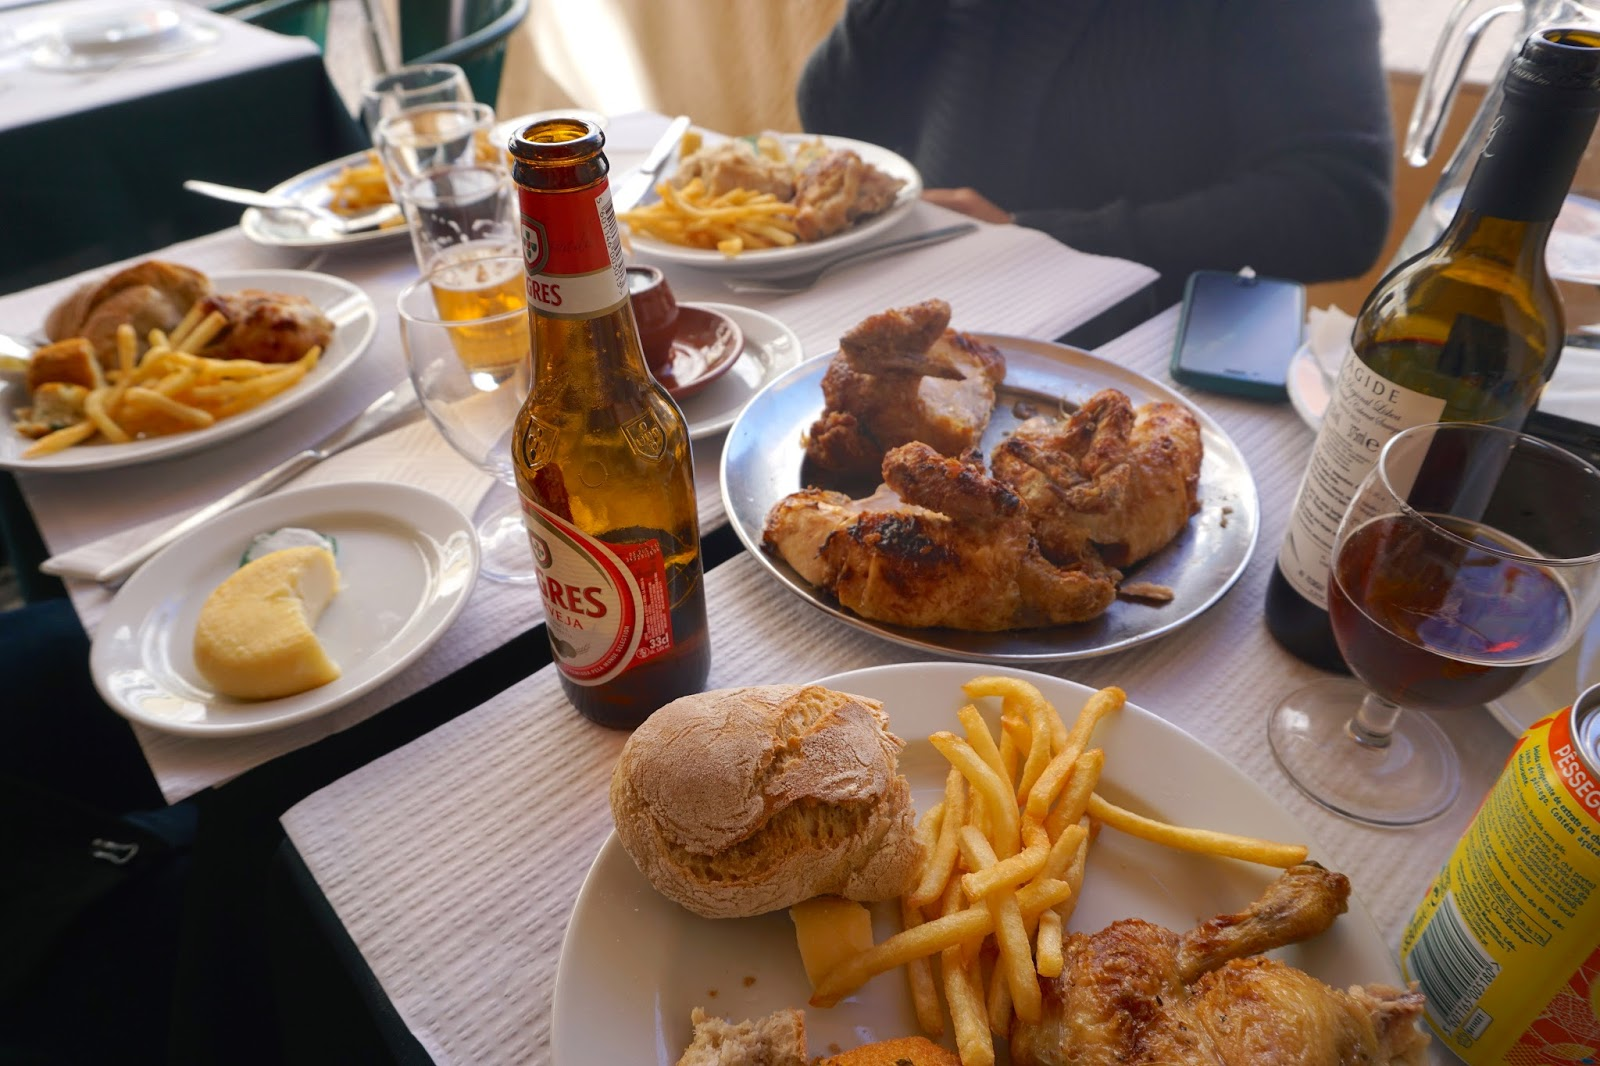 Eating portuguese chicken for lunch, with beers and wine